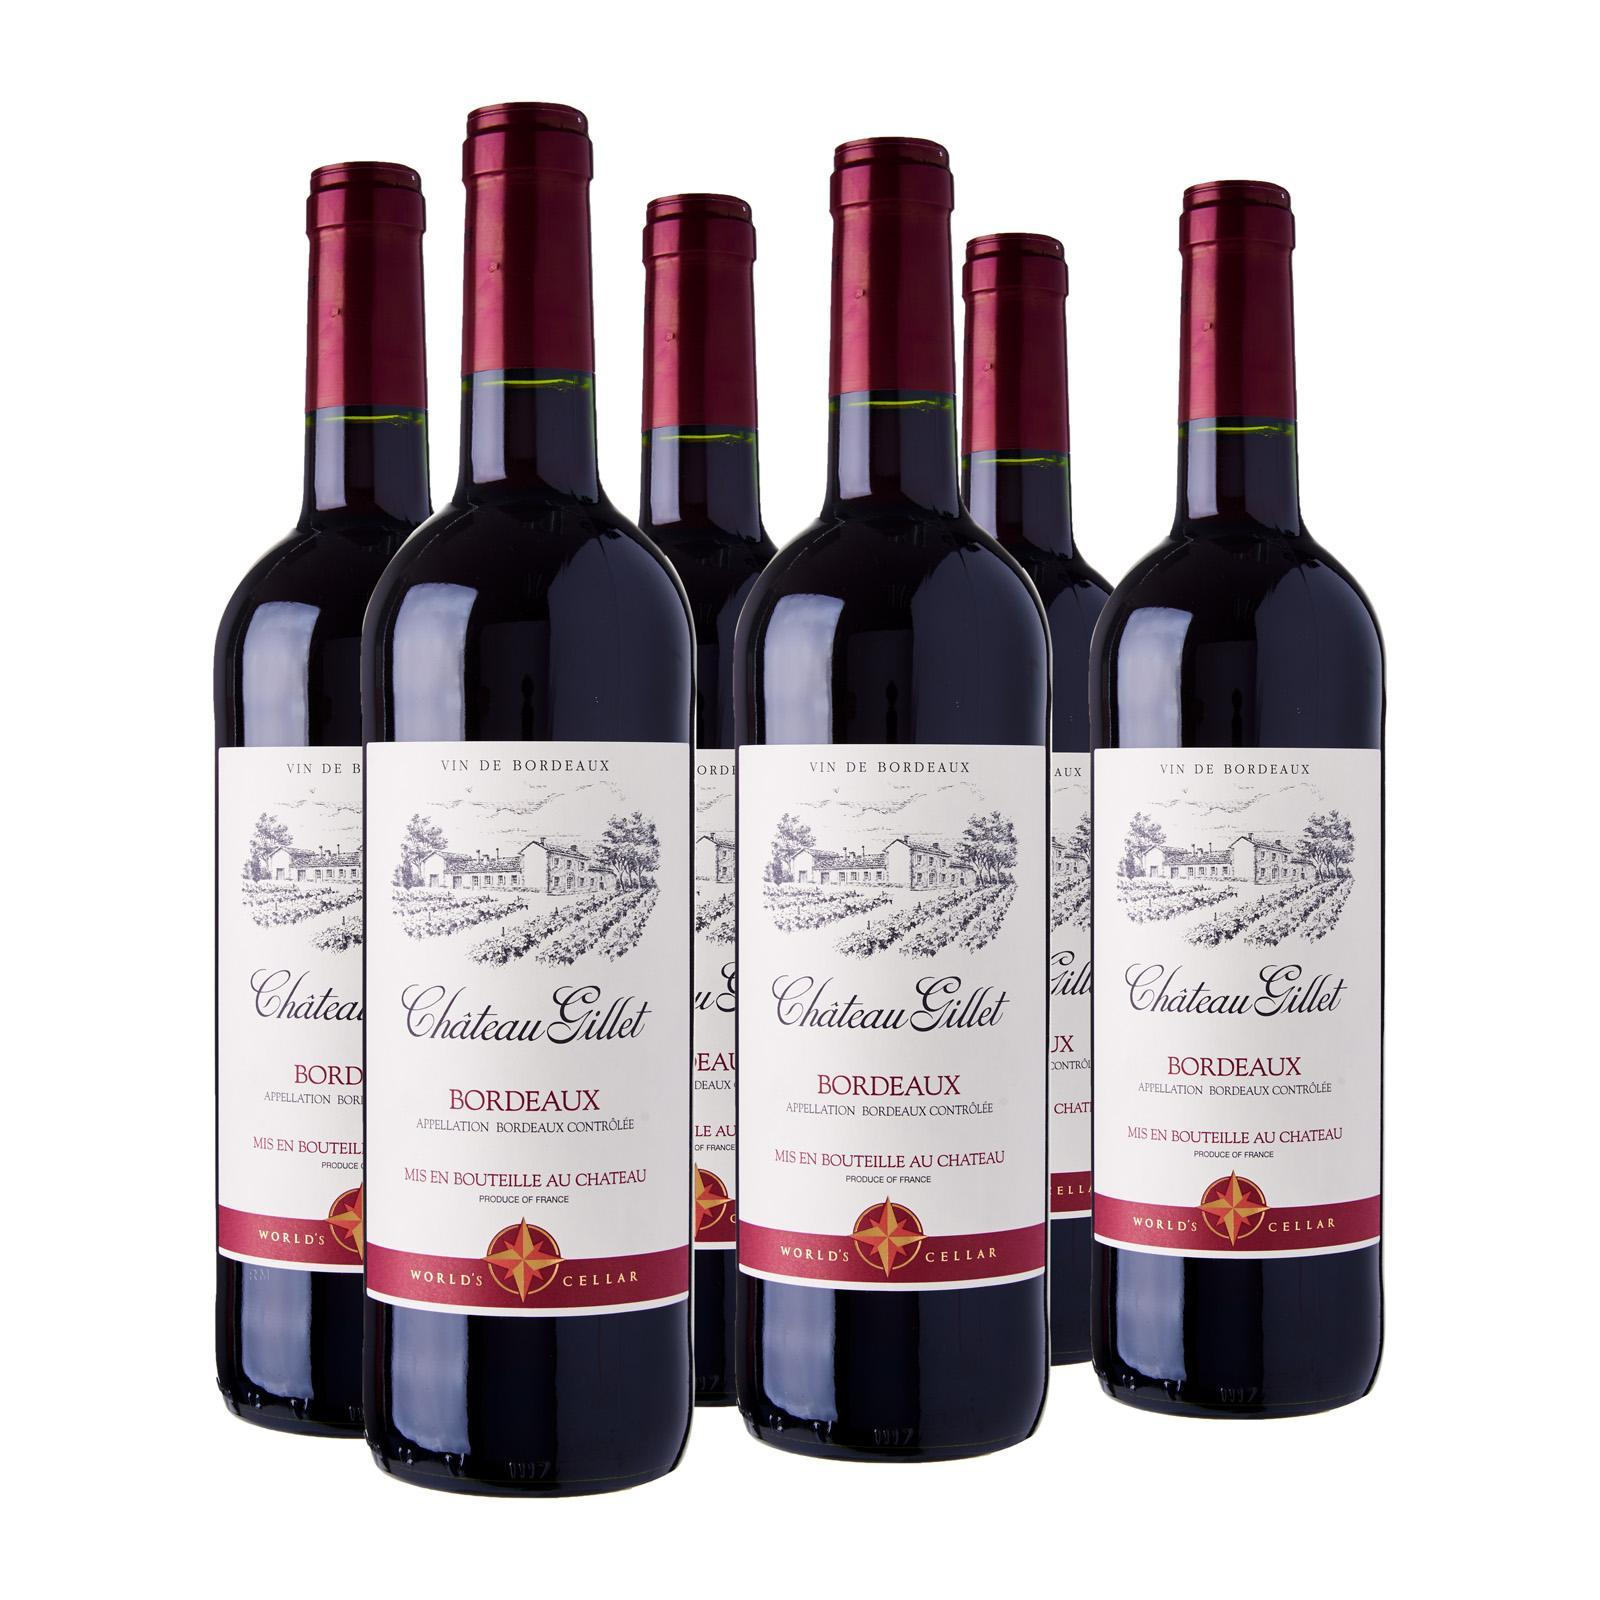 World's Cellar Chateau Gillet Bordeaux Red Wine - Case